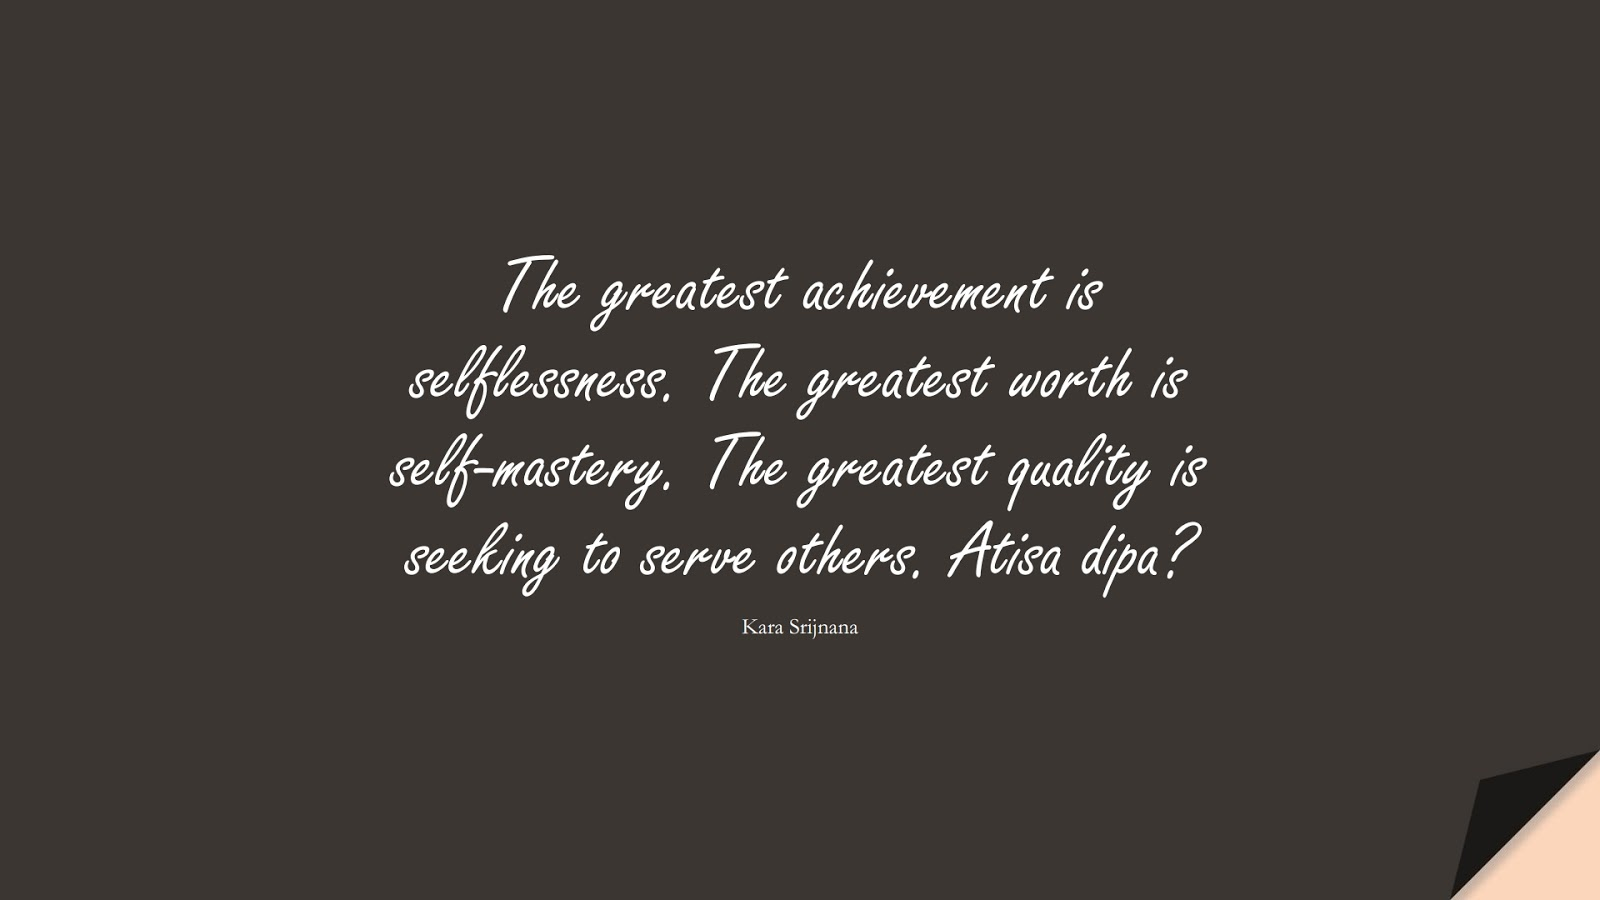 The greatest achievement is selflessness. The greatest worth is self-mastery. The greatest quality is seeking to serve others. Atisa dipa? (Kara Srijnana);  #RelationshipQuotes